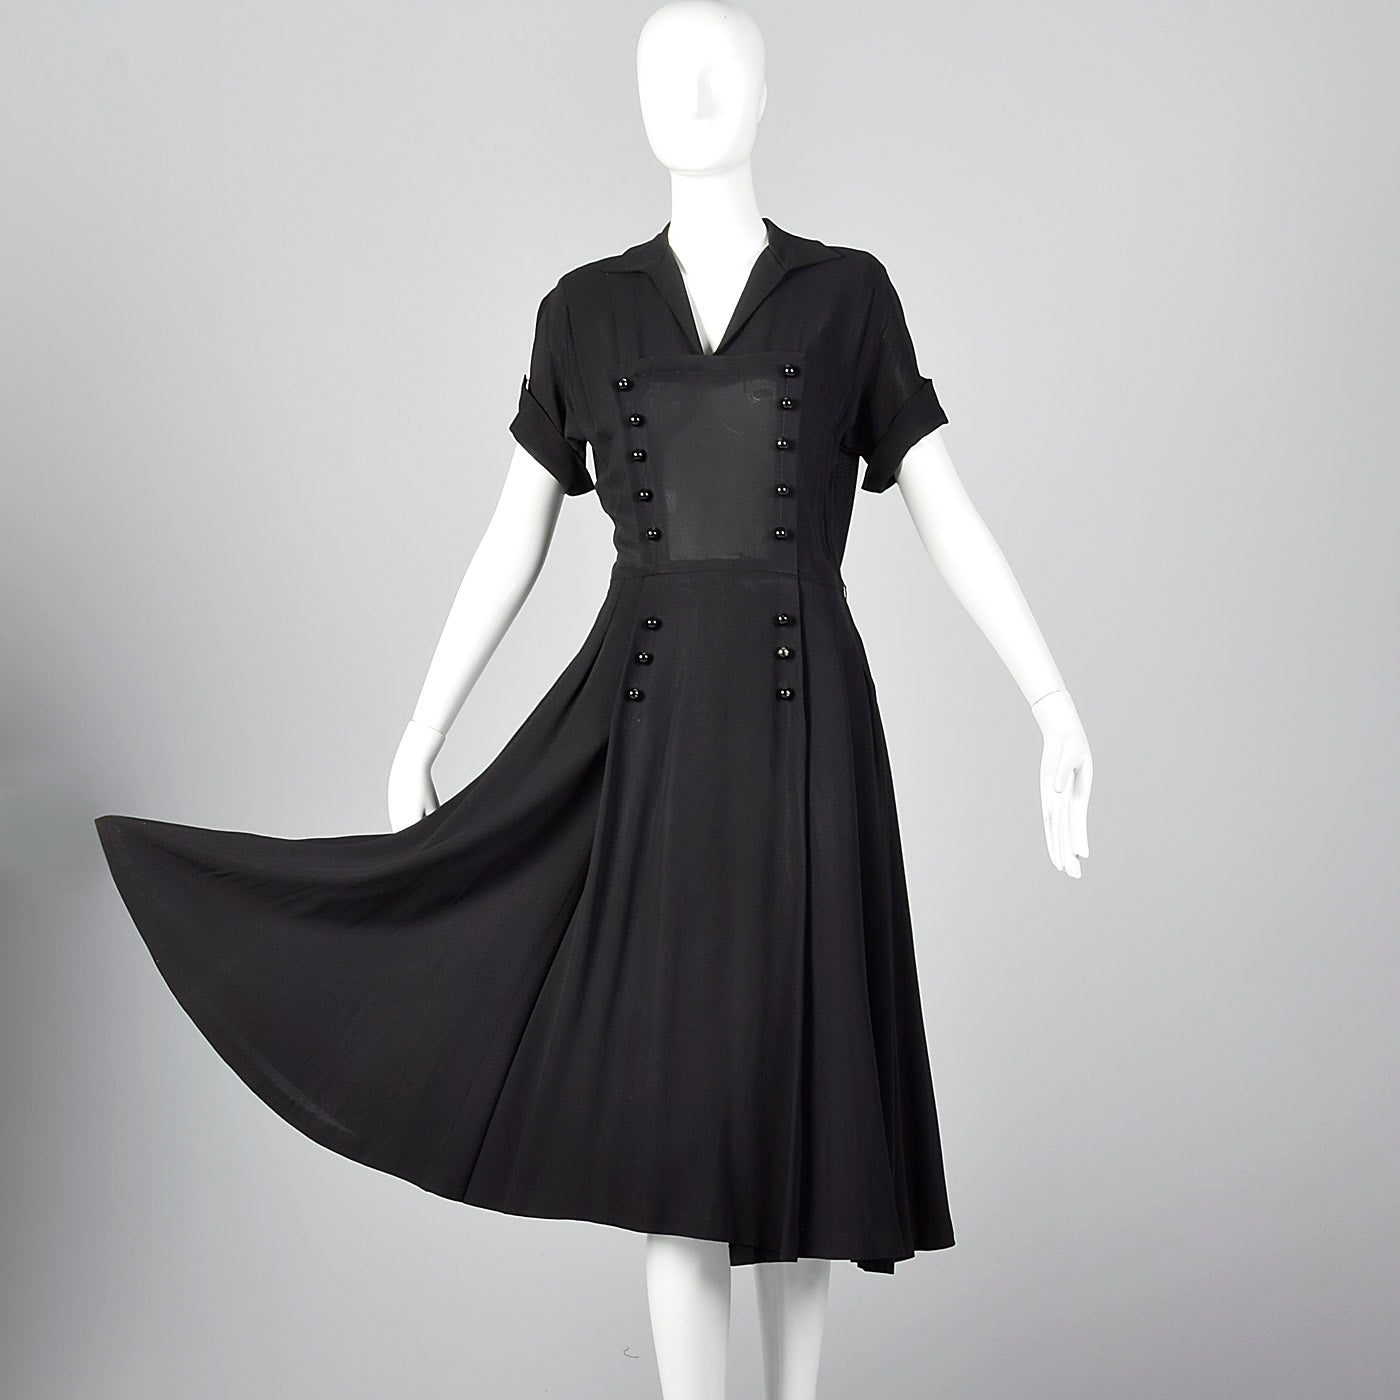 1950s Black Dress with Double Breasted Decorative Buttons